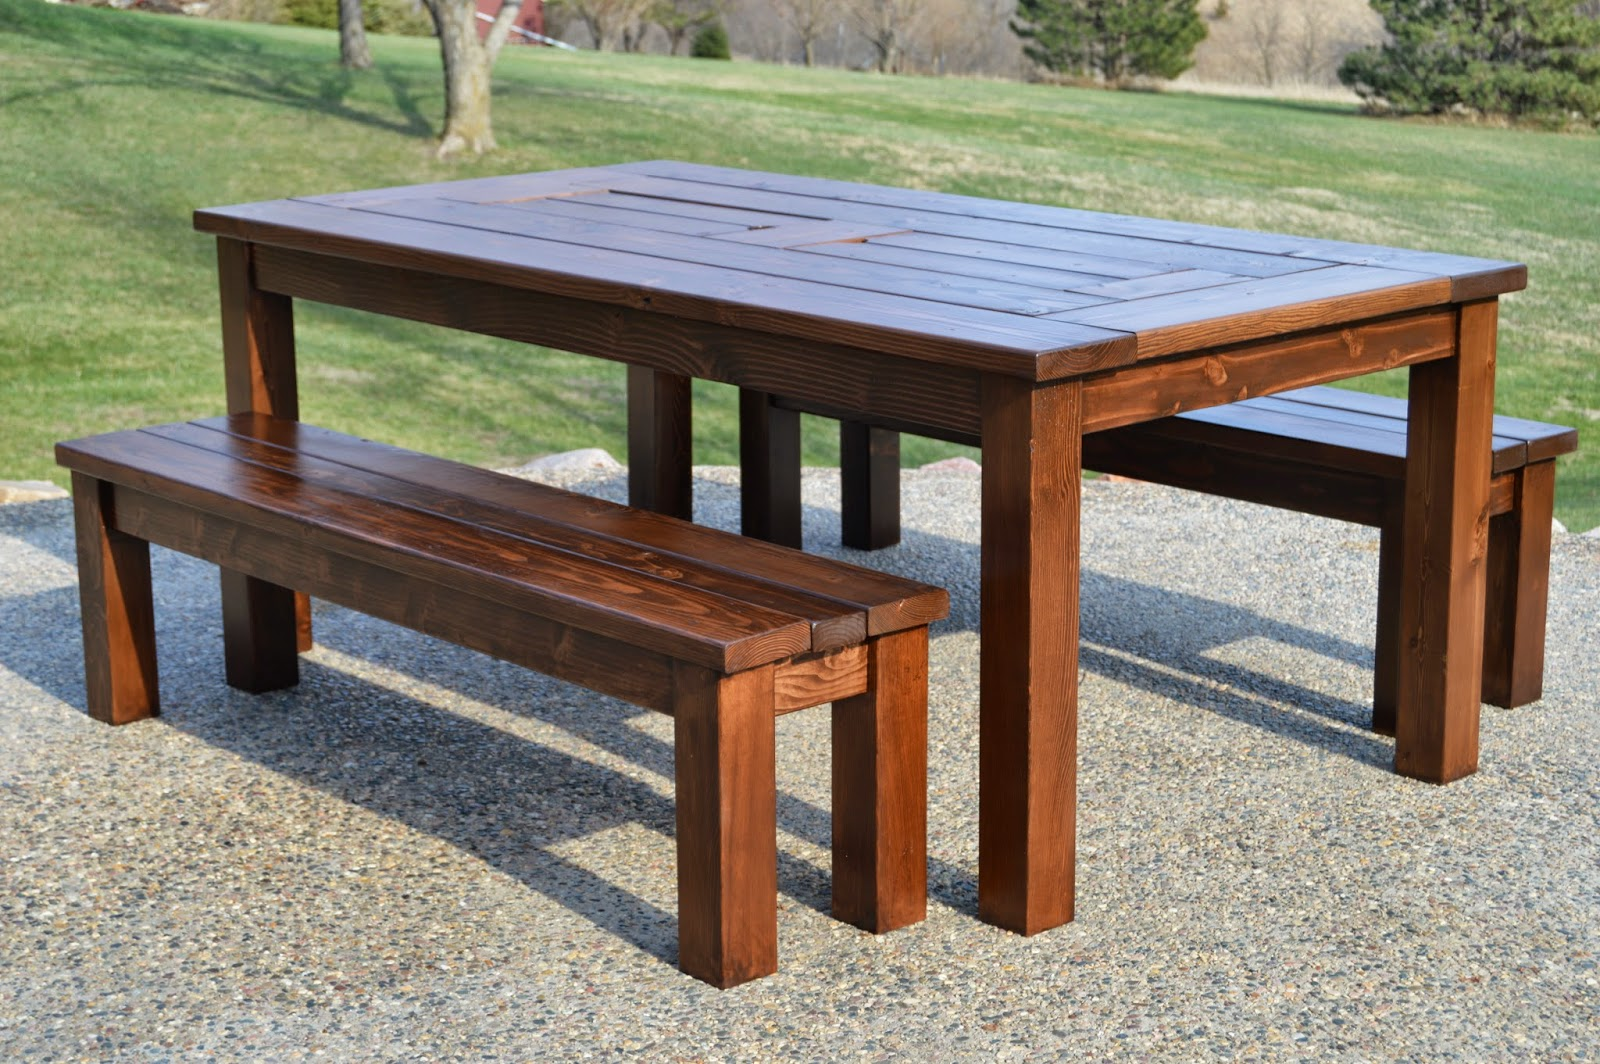 Kruse 39 s workshop simple indoor outdoor rustic bench plan for Diy garden table designs